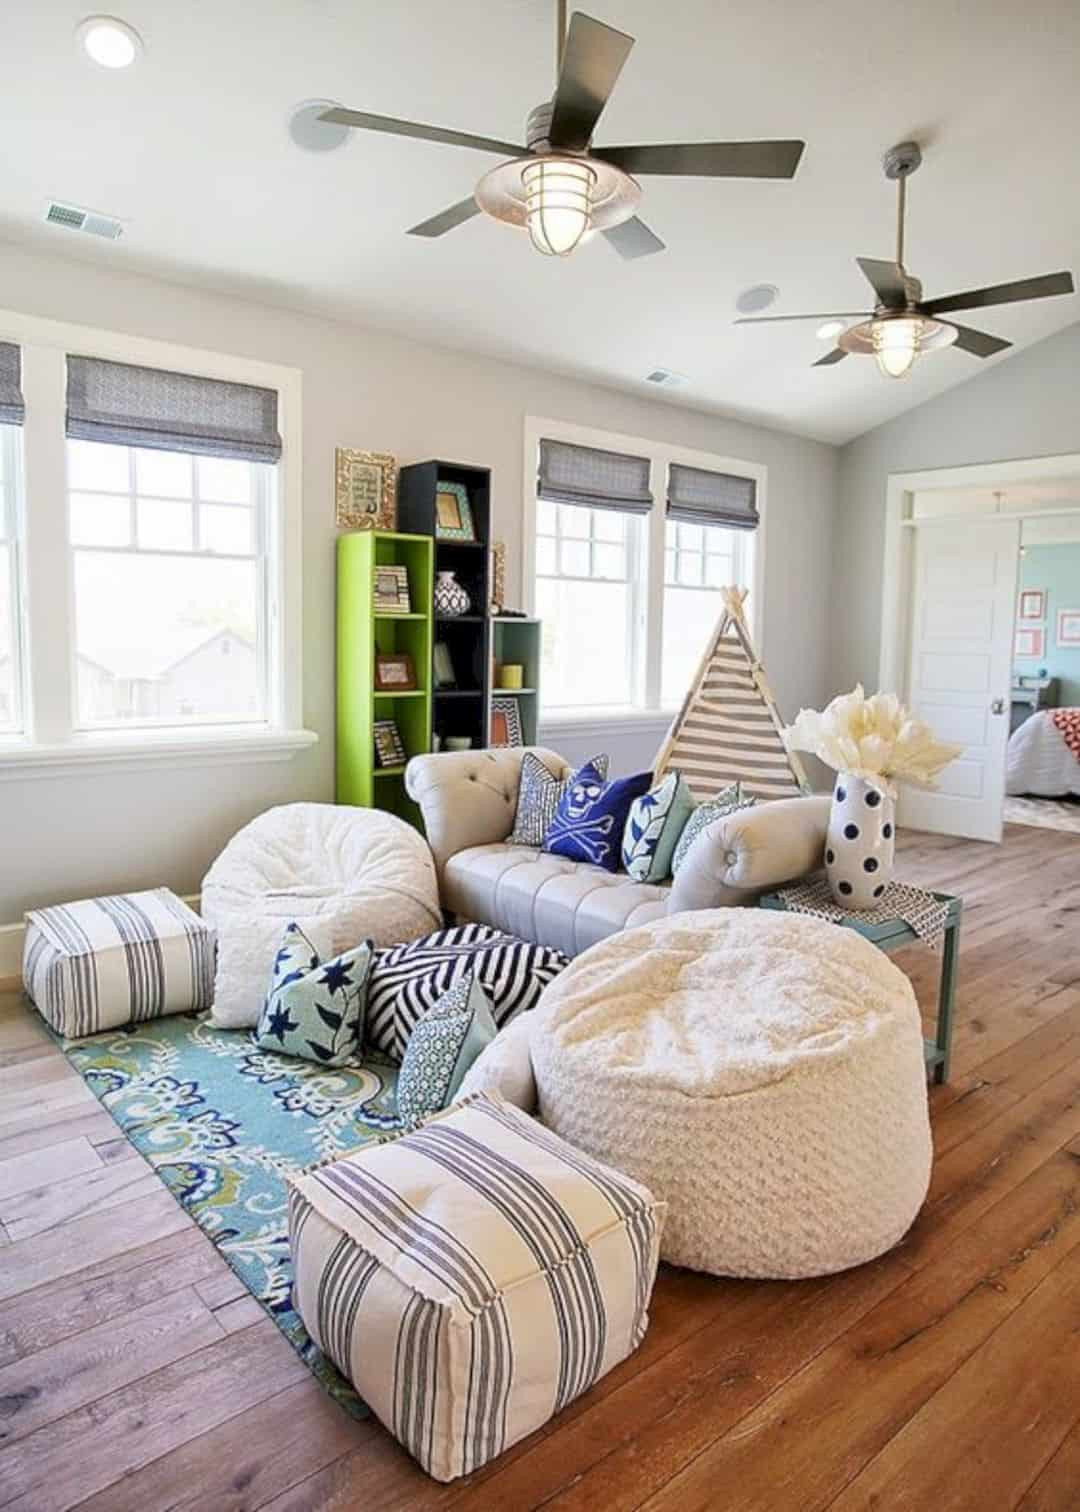 Kids Room Seating  16 Super Fun Furniture Ideas for Game Room